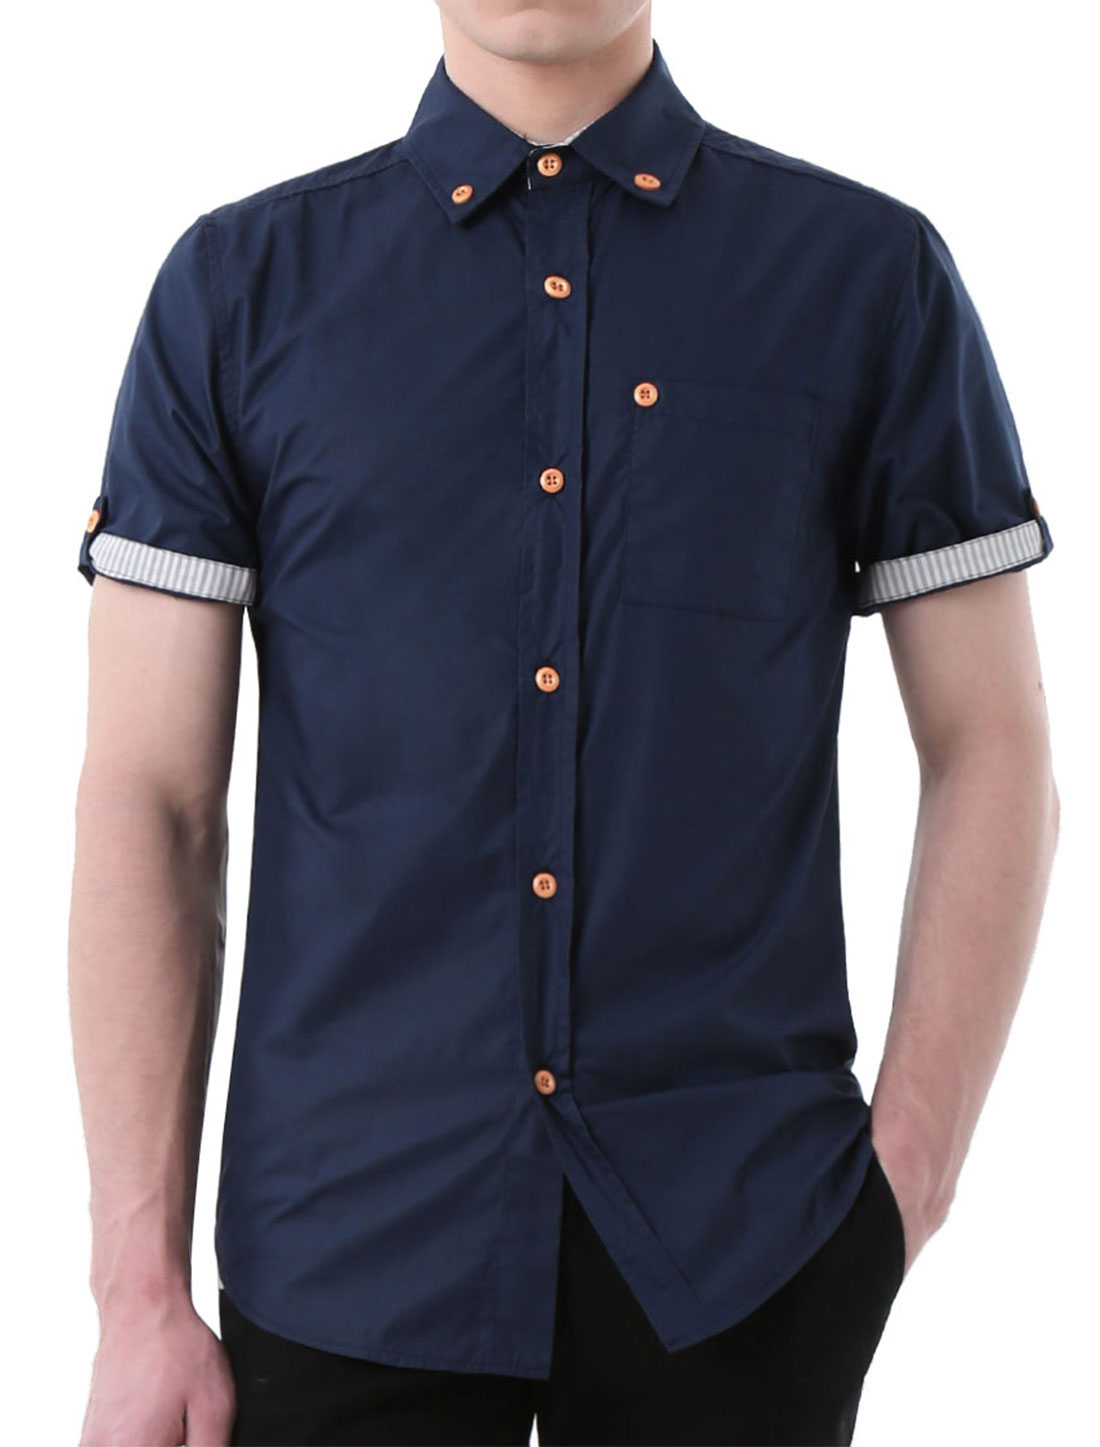 Man Point Collar Roll Up Sleeves Casual Shirts Navy Blue M